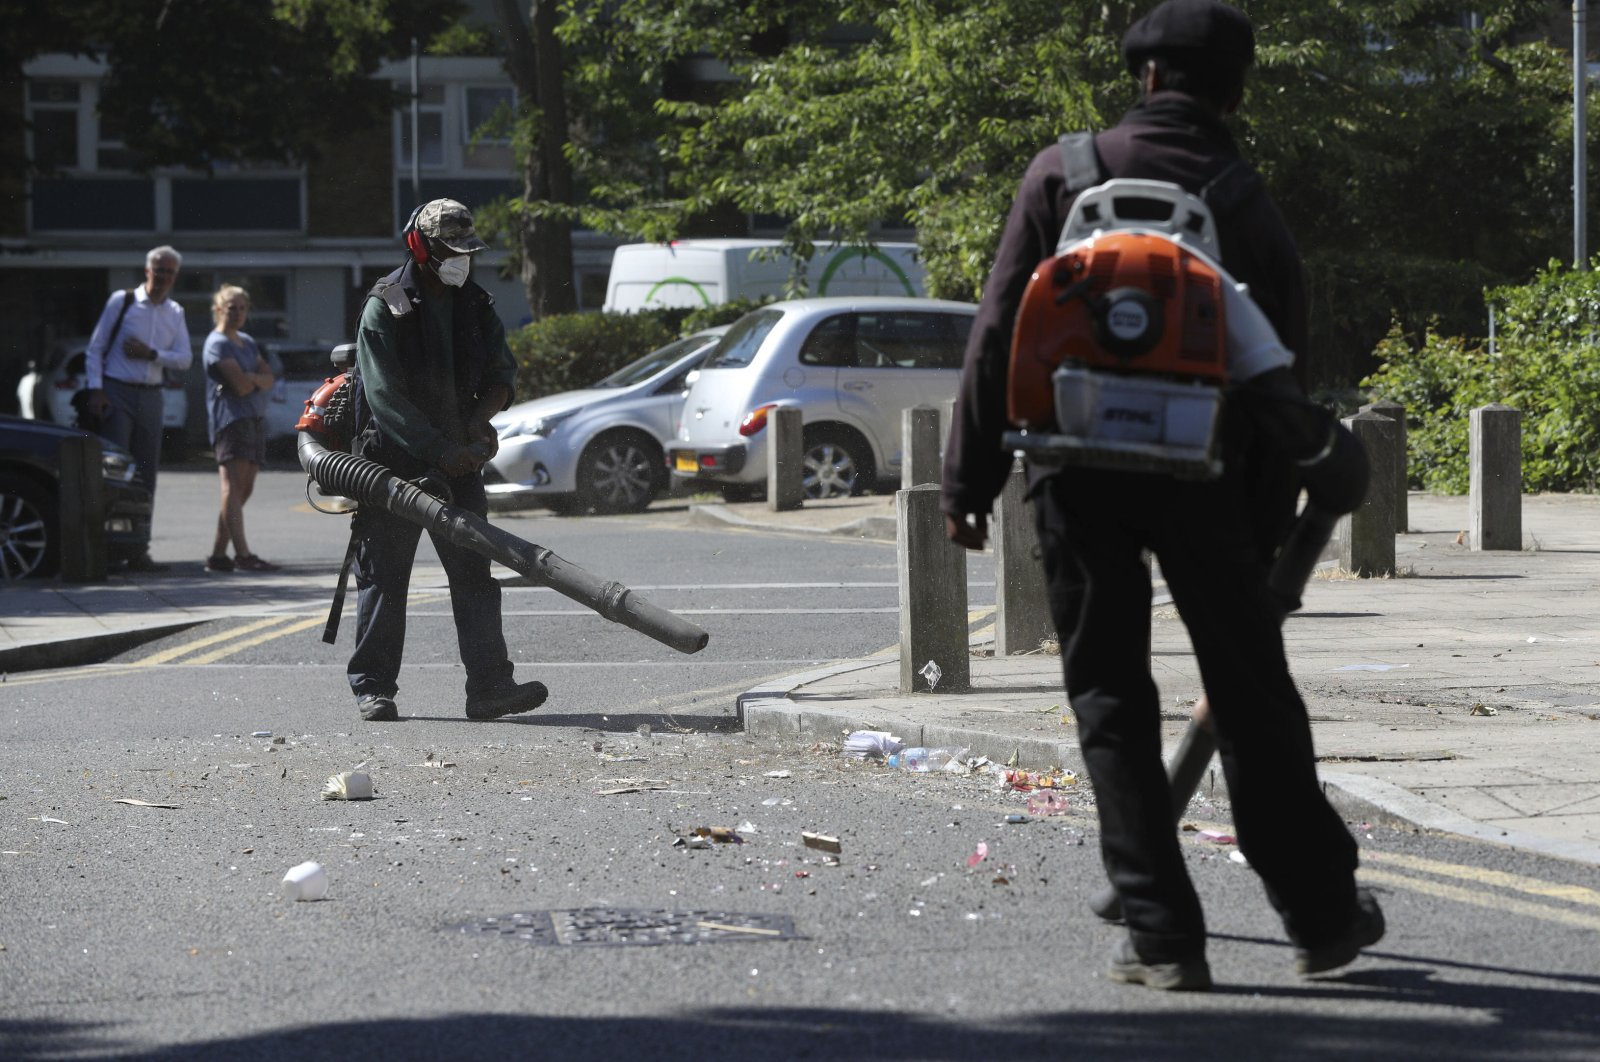 Volunteers clean up following violent confrontations with police that took place overnight in the Brixton area of London, June 25, 2020. (AP Photo)